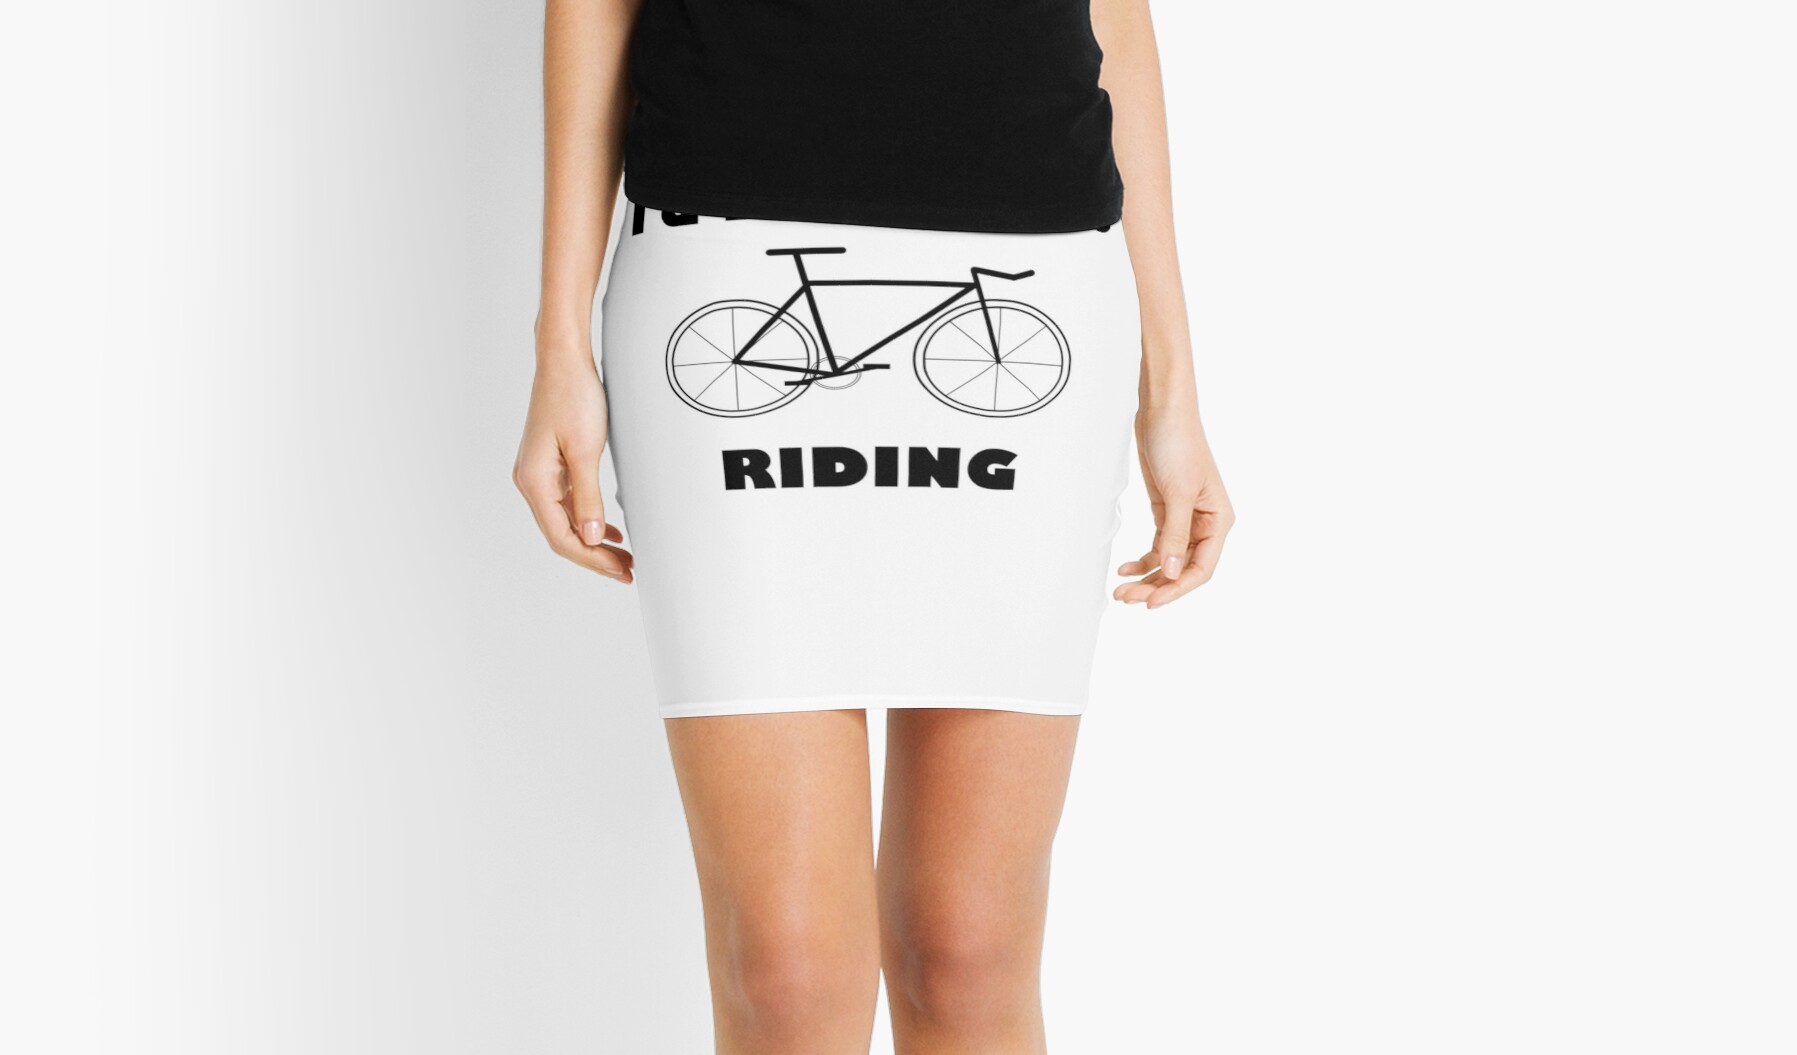 I'd rather be riding my bike by dttb